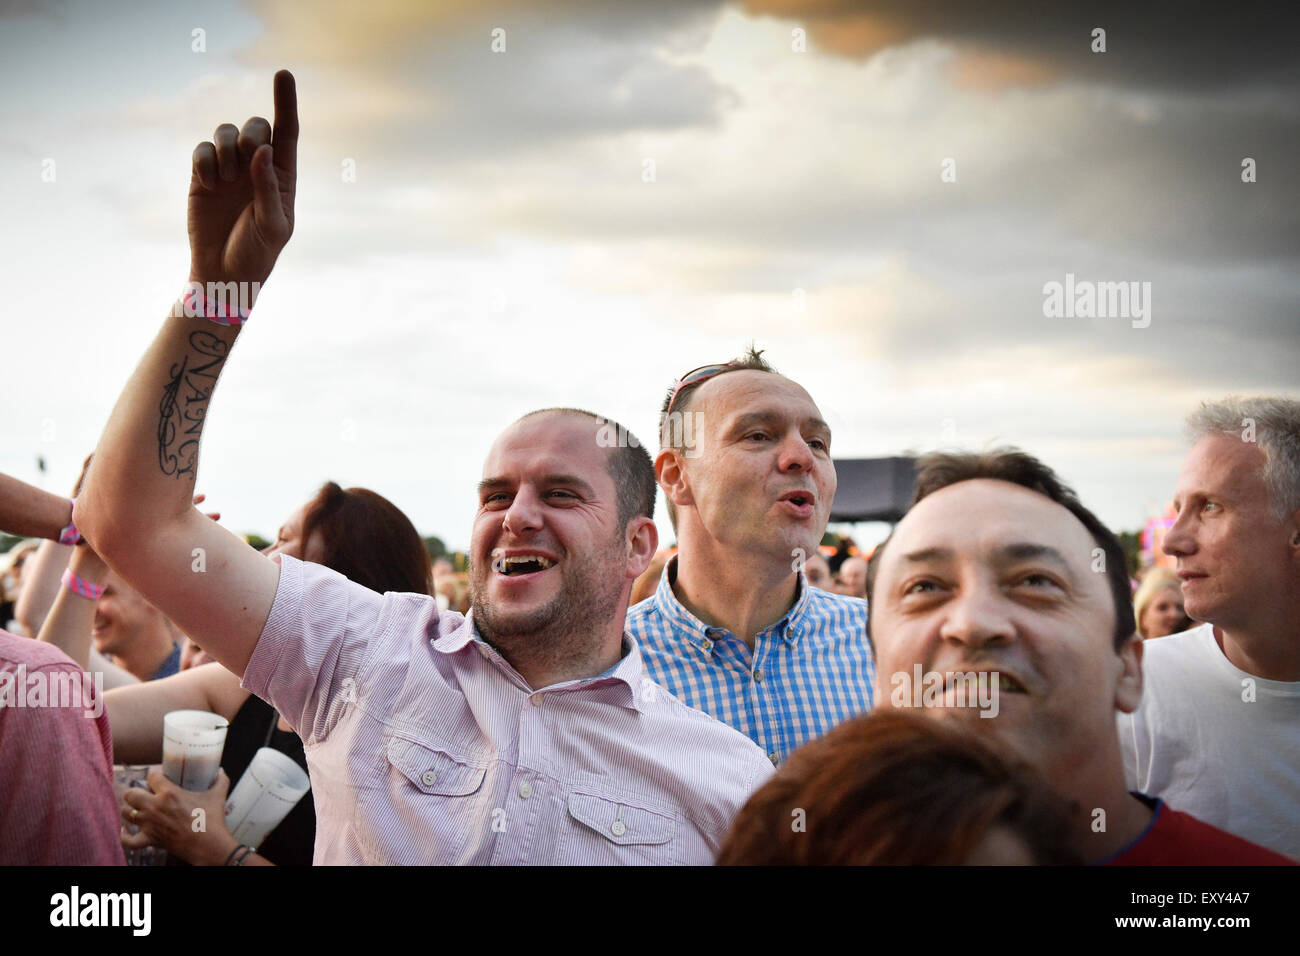 Brentwood, Essex.  17th July, 2015.  Party time as festivalgoers enjoy the entertainment at this year's sell-out - Stock Image